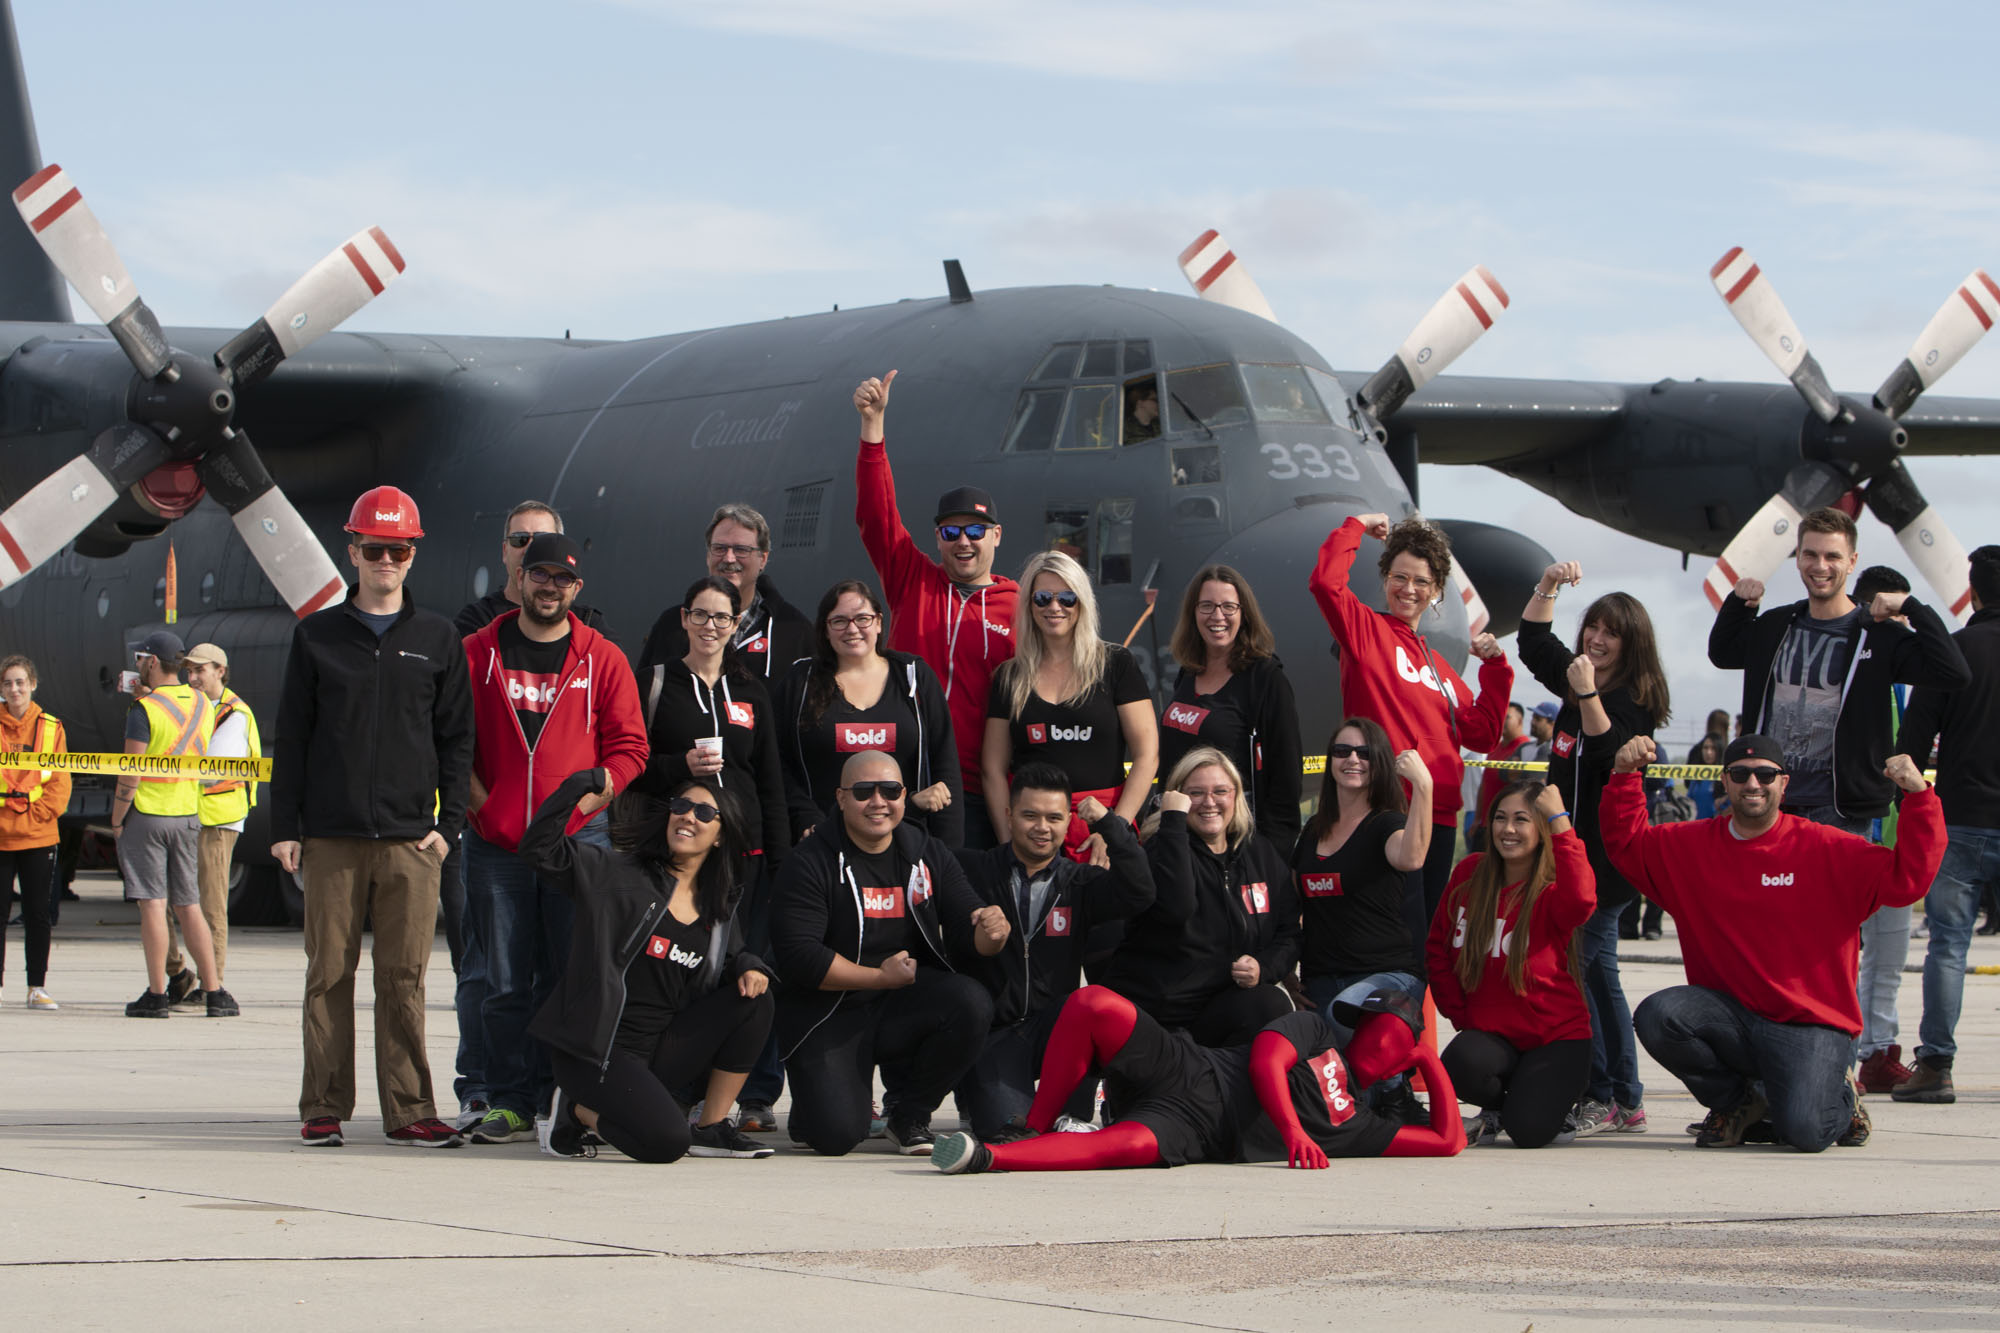 bold-team-at-plane-pull-charity-event